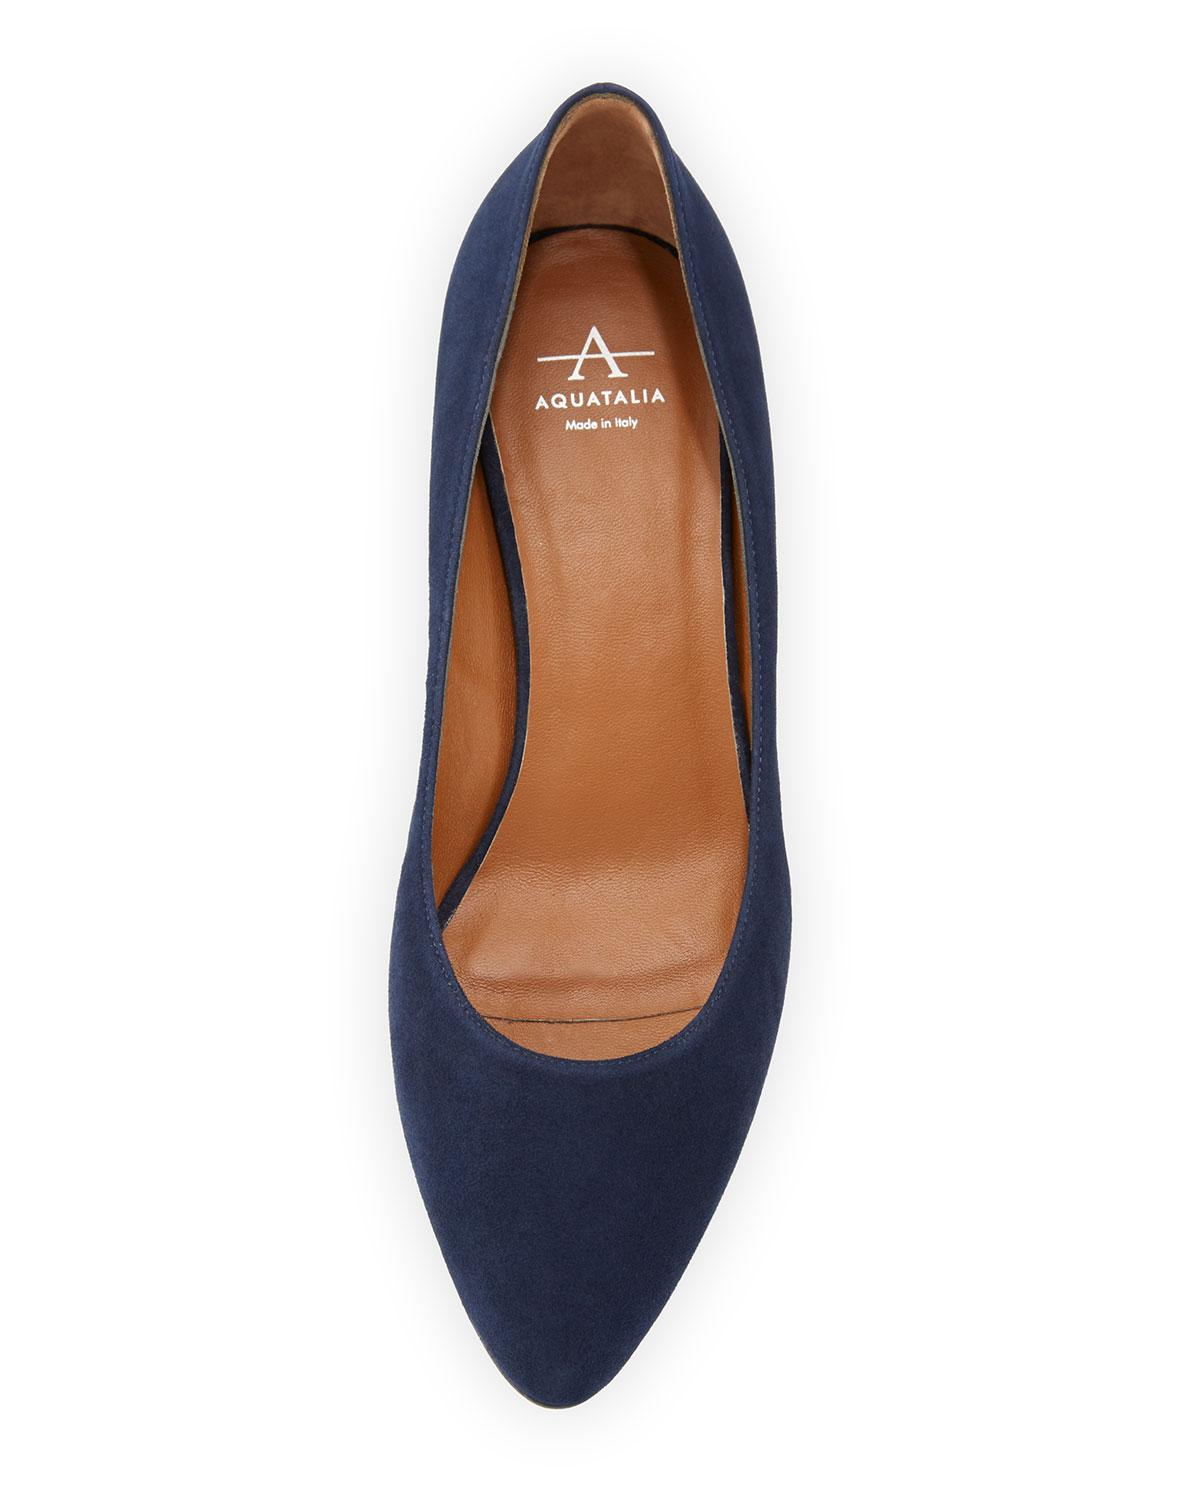 852a8b7bb2ad Lyst - Aquatalia Pheobe Weatherproof Suede Block-heel Pump in Blue